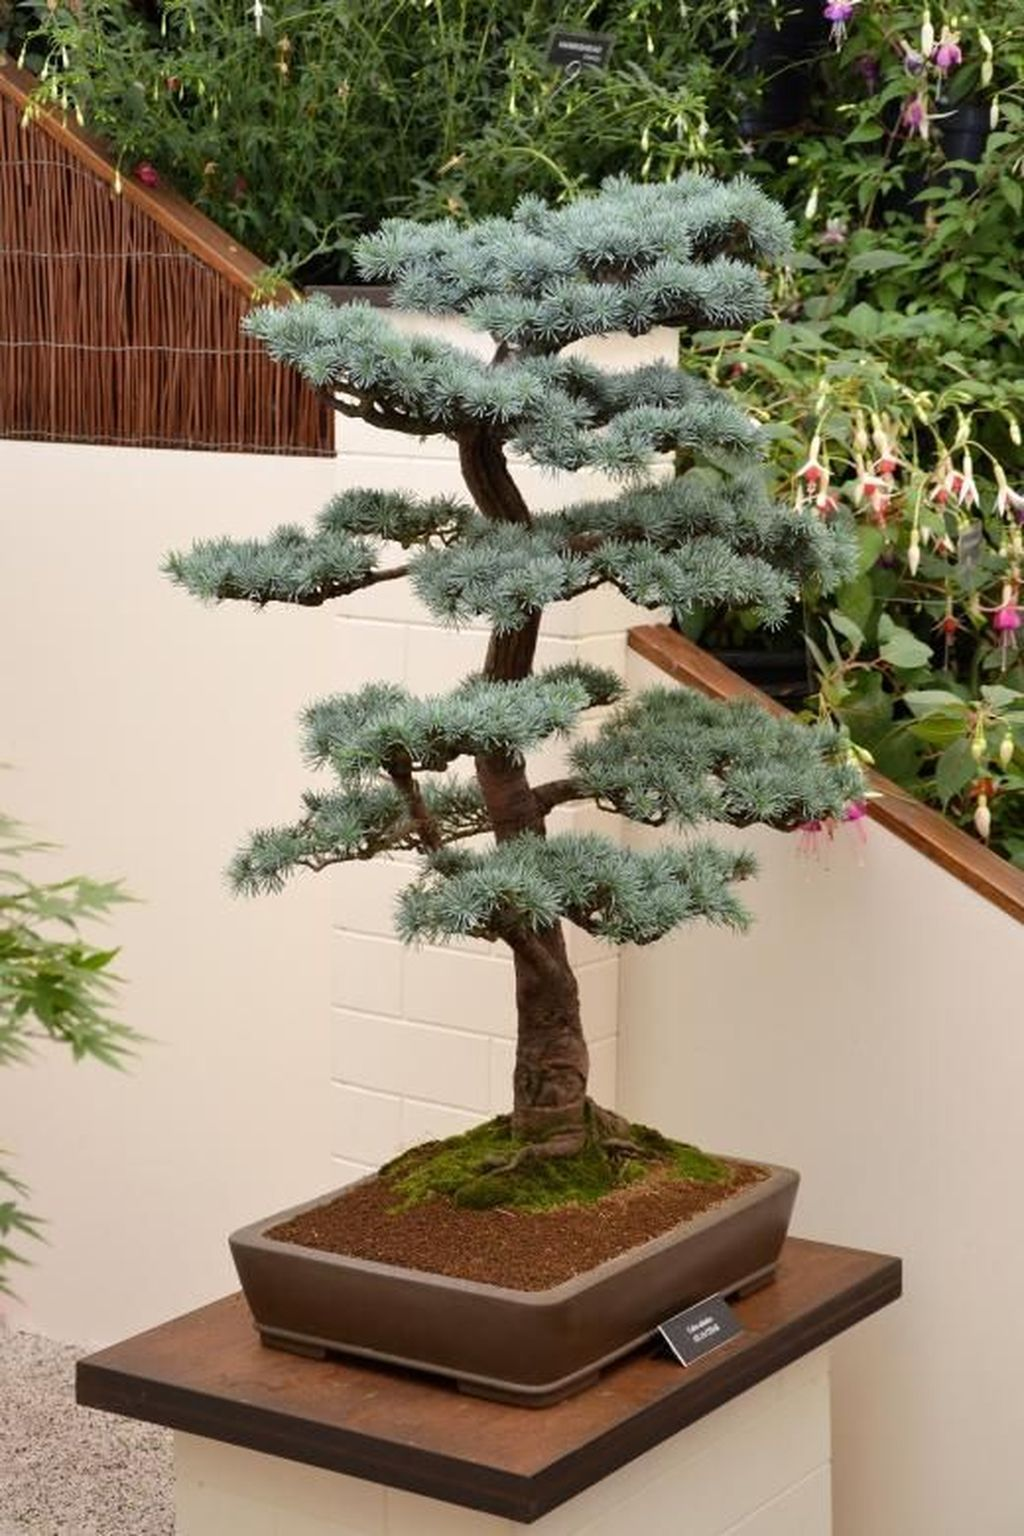 Achat Arbre D'intérieur 44 Stunning Bonsai Garden Ideas Best For Outdoor Decor Bonsaï Et